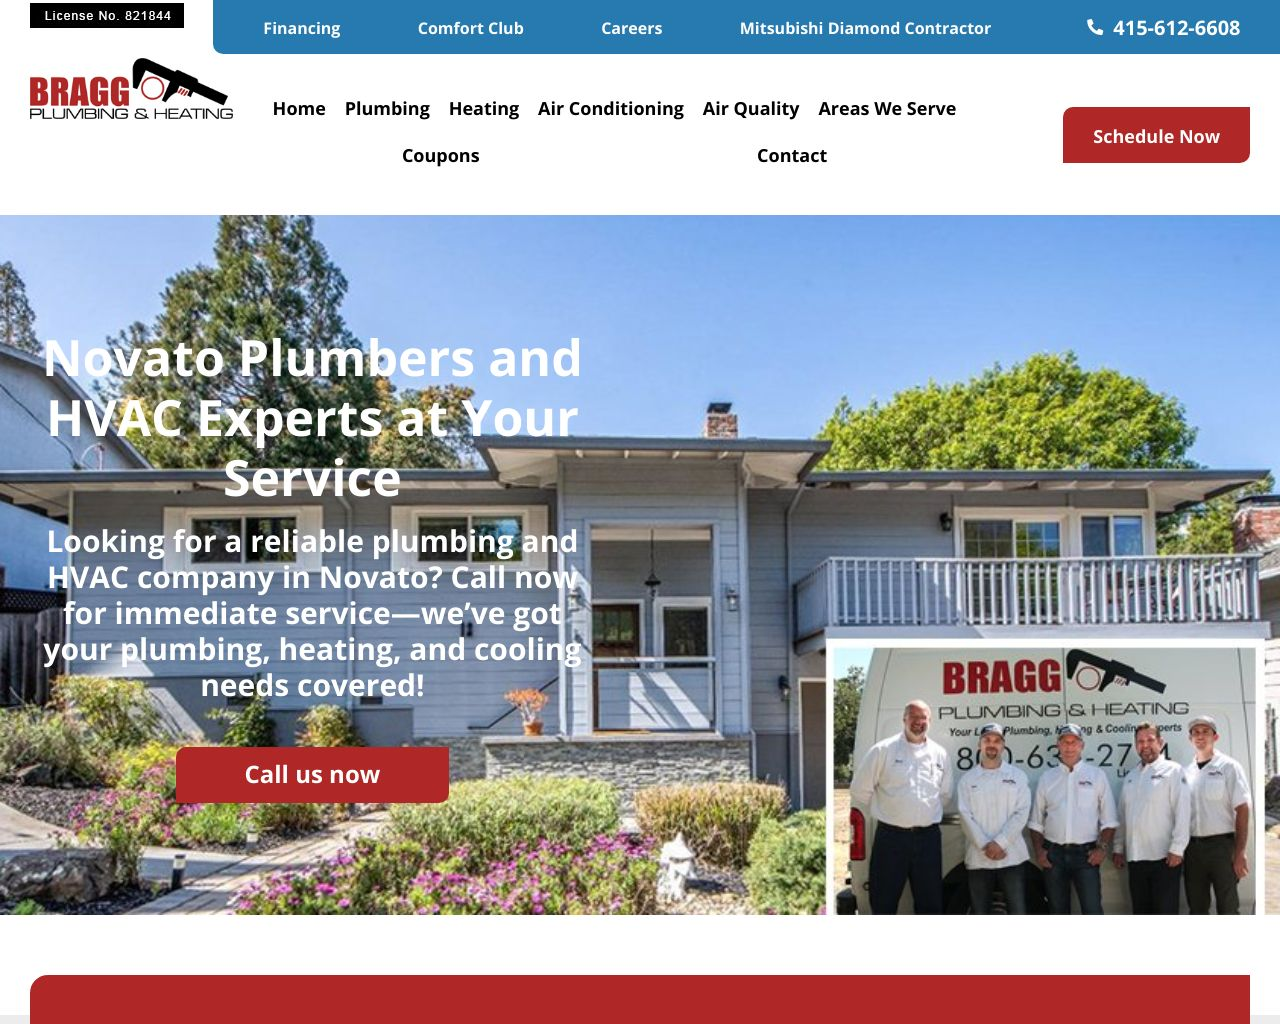 Bragg Plumbing & Heating | Diamond Certified